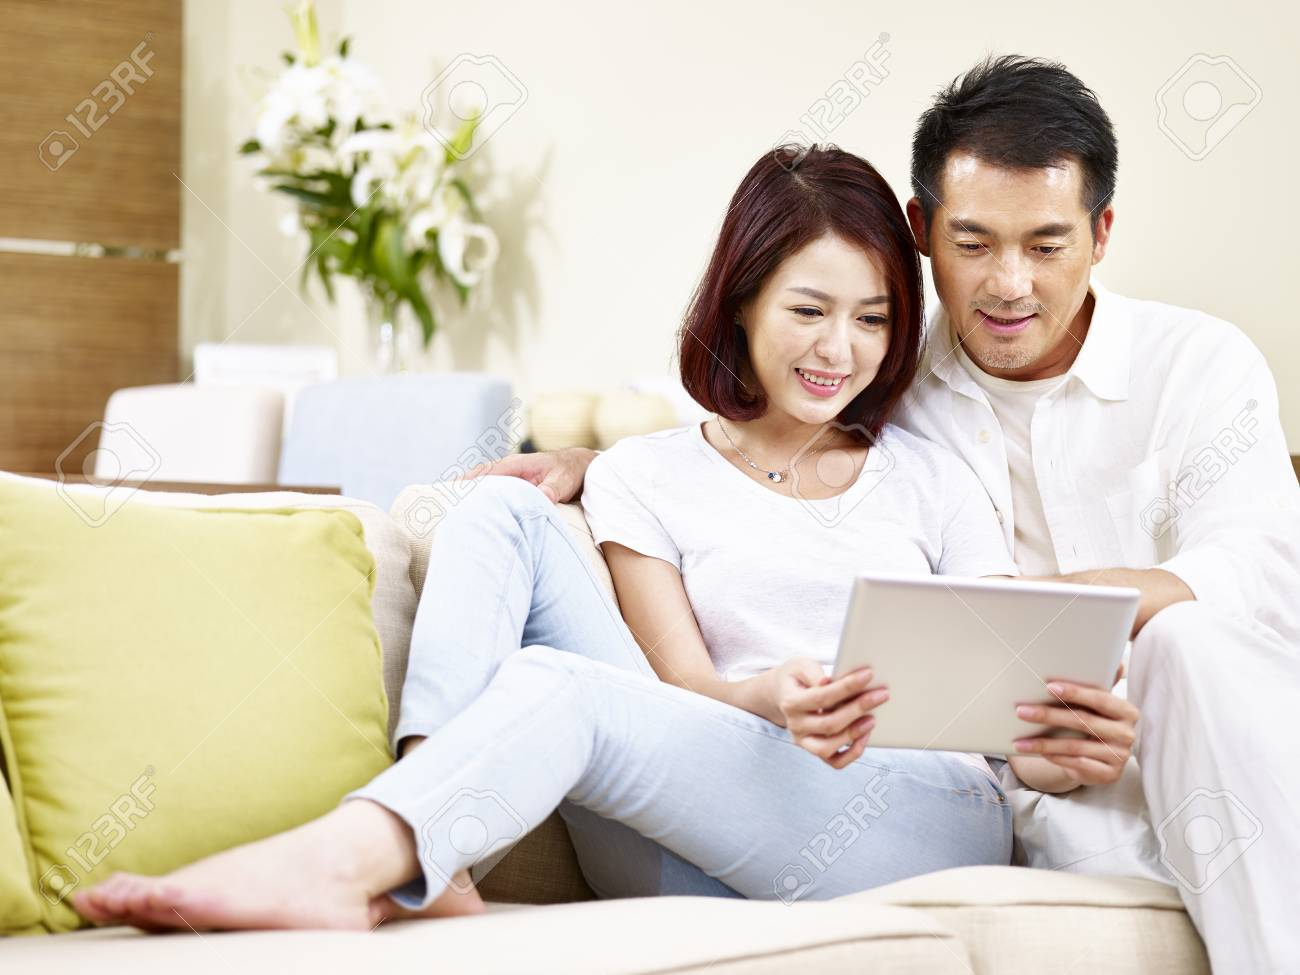 asian couple sitting on family couch in living room using digital tablet together. - 91879462